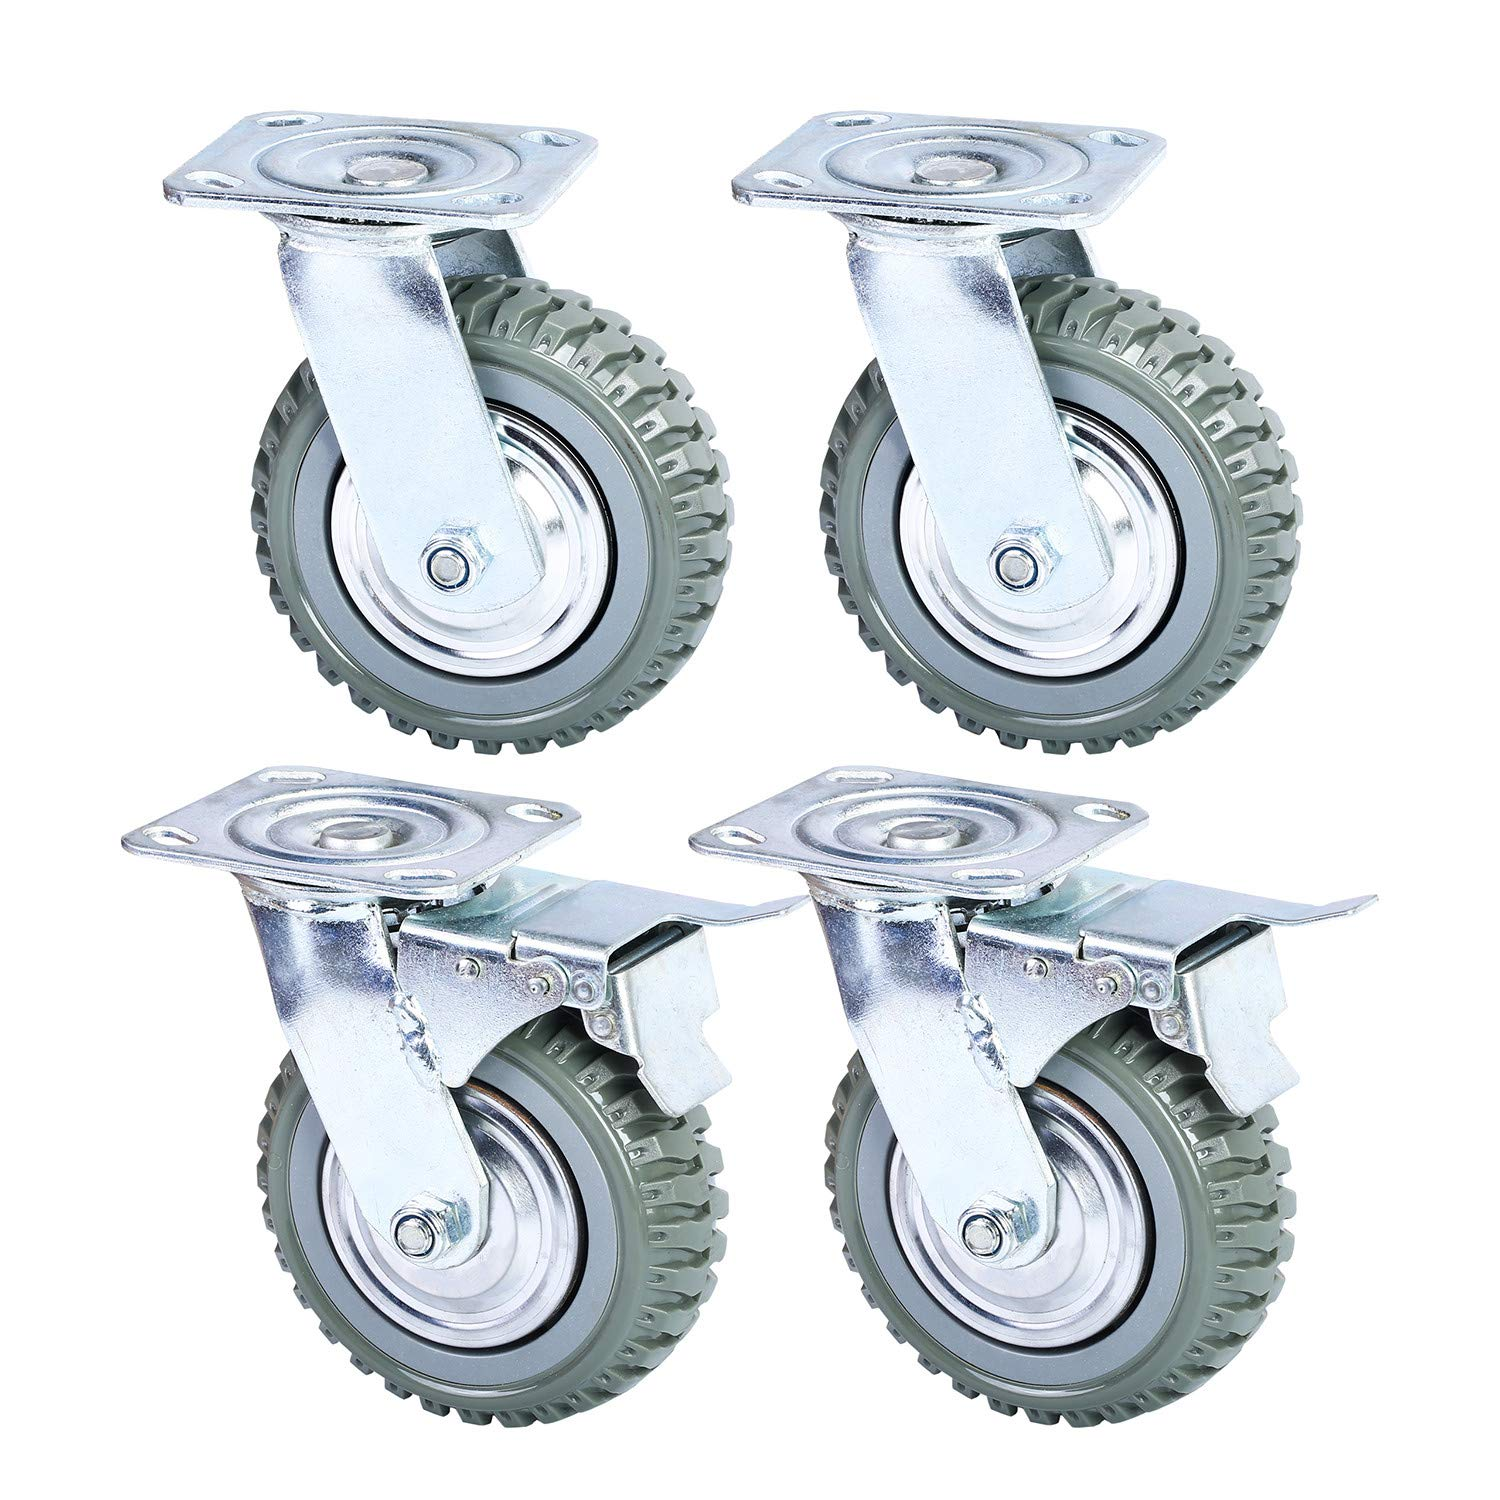 6'' Swivel Caster Wheels Anti-Skid PU Swivel Casters with 360 Degree for Set of 4 (2 with Brake Lock,2 Without Brake Lock)